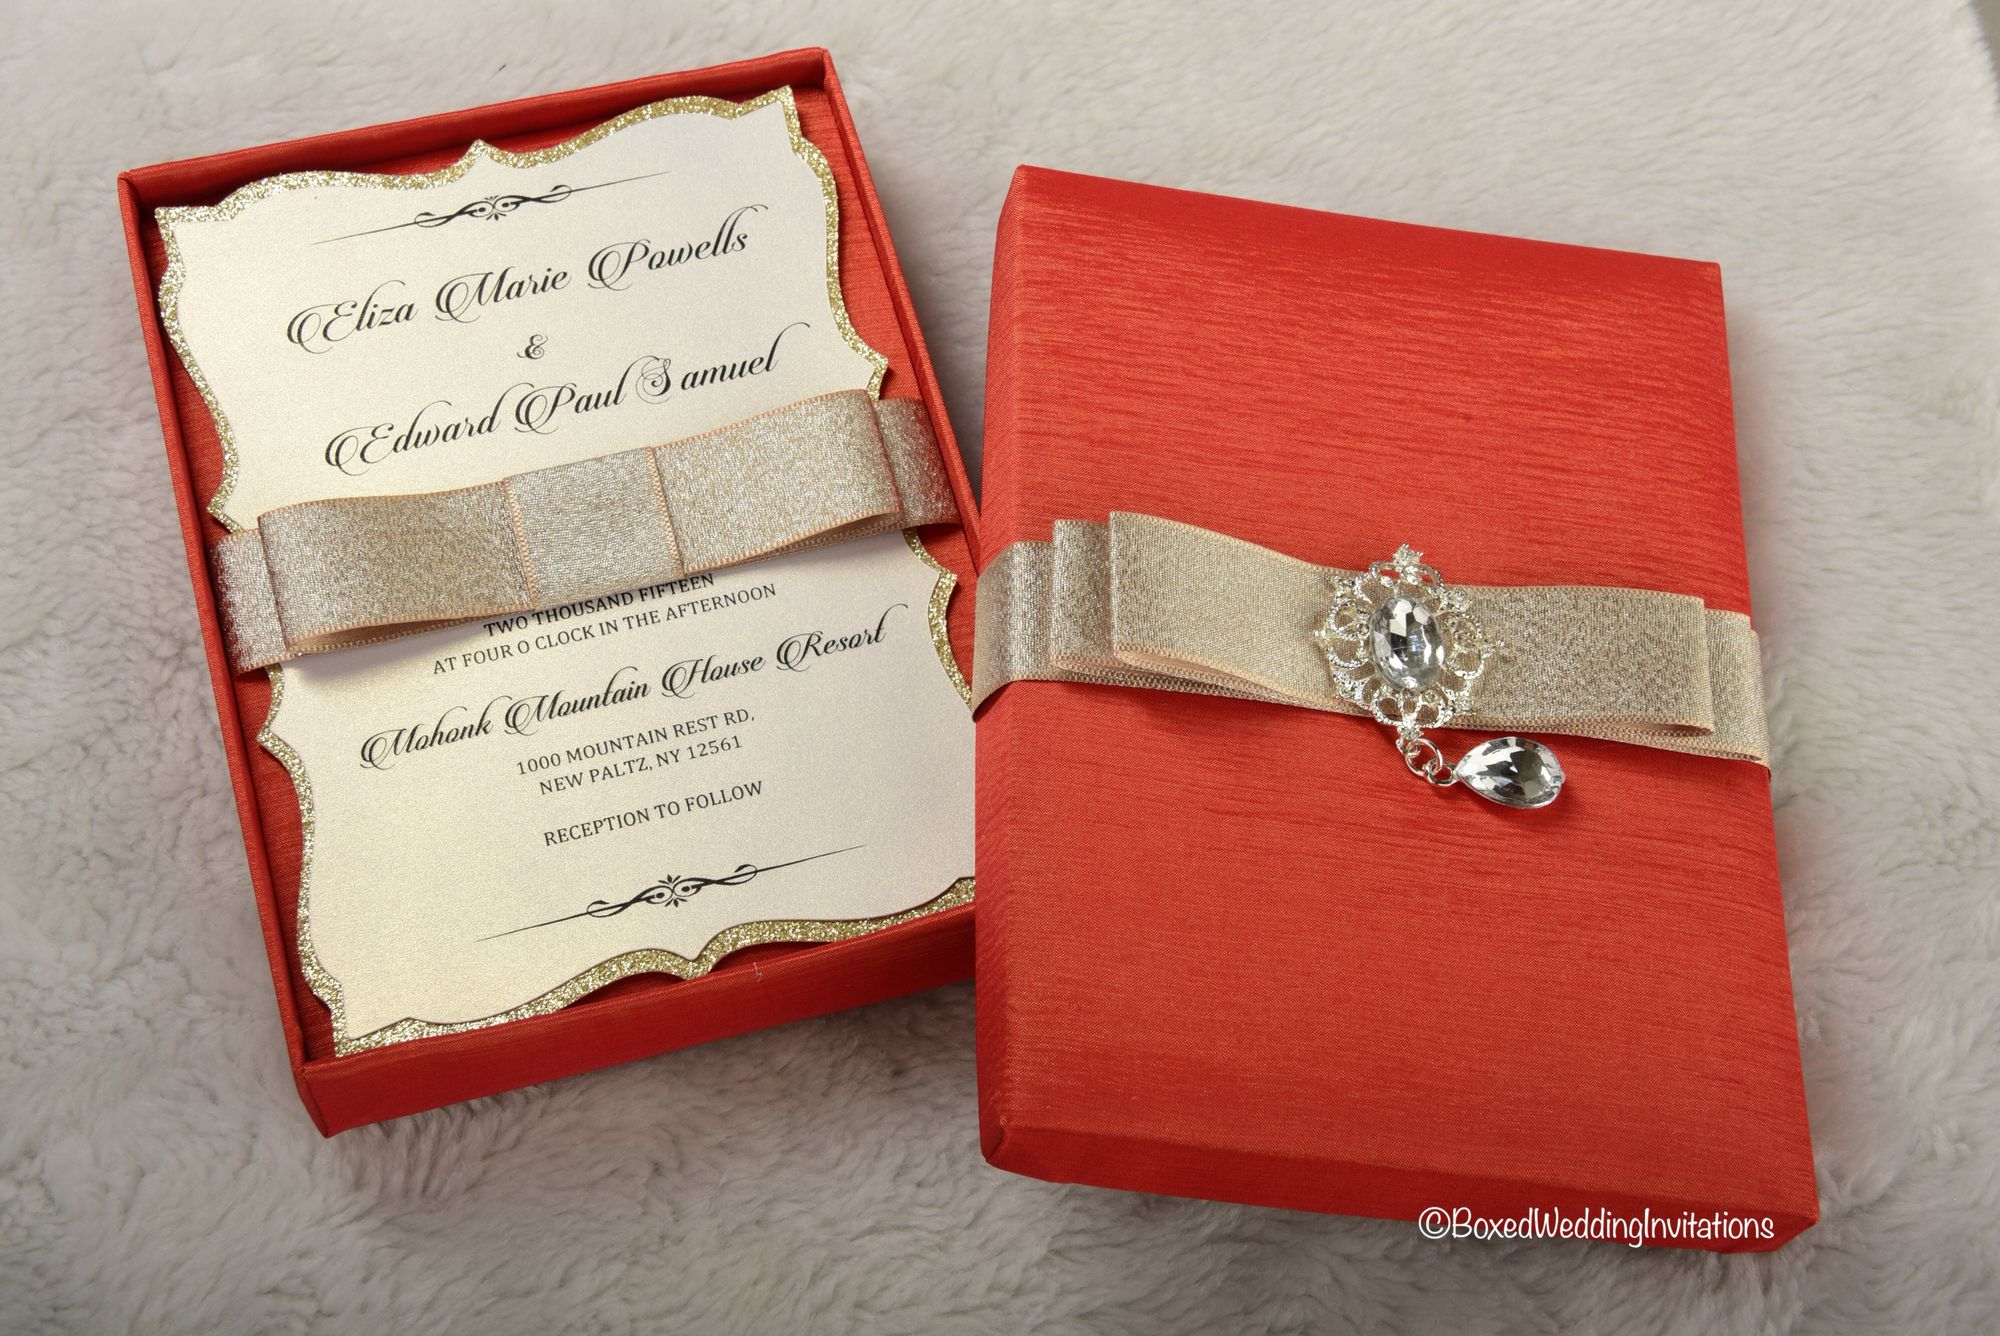 Boxed wedding invitation had ands by www.boxedweddinginvitations.com ...